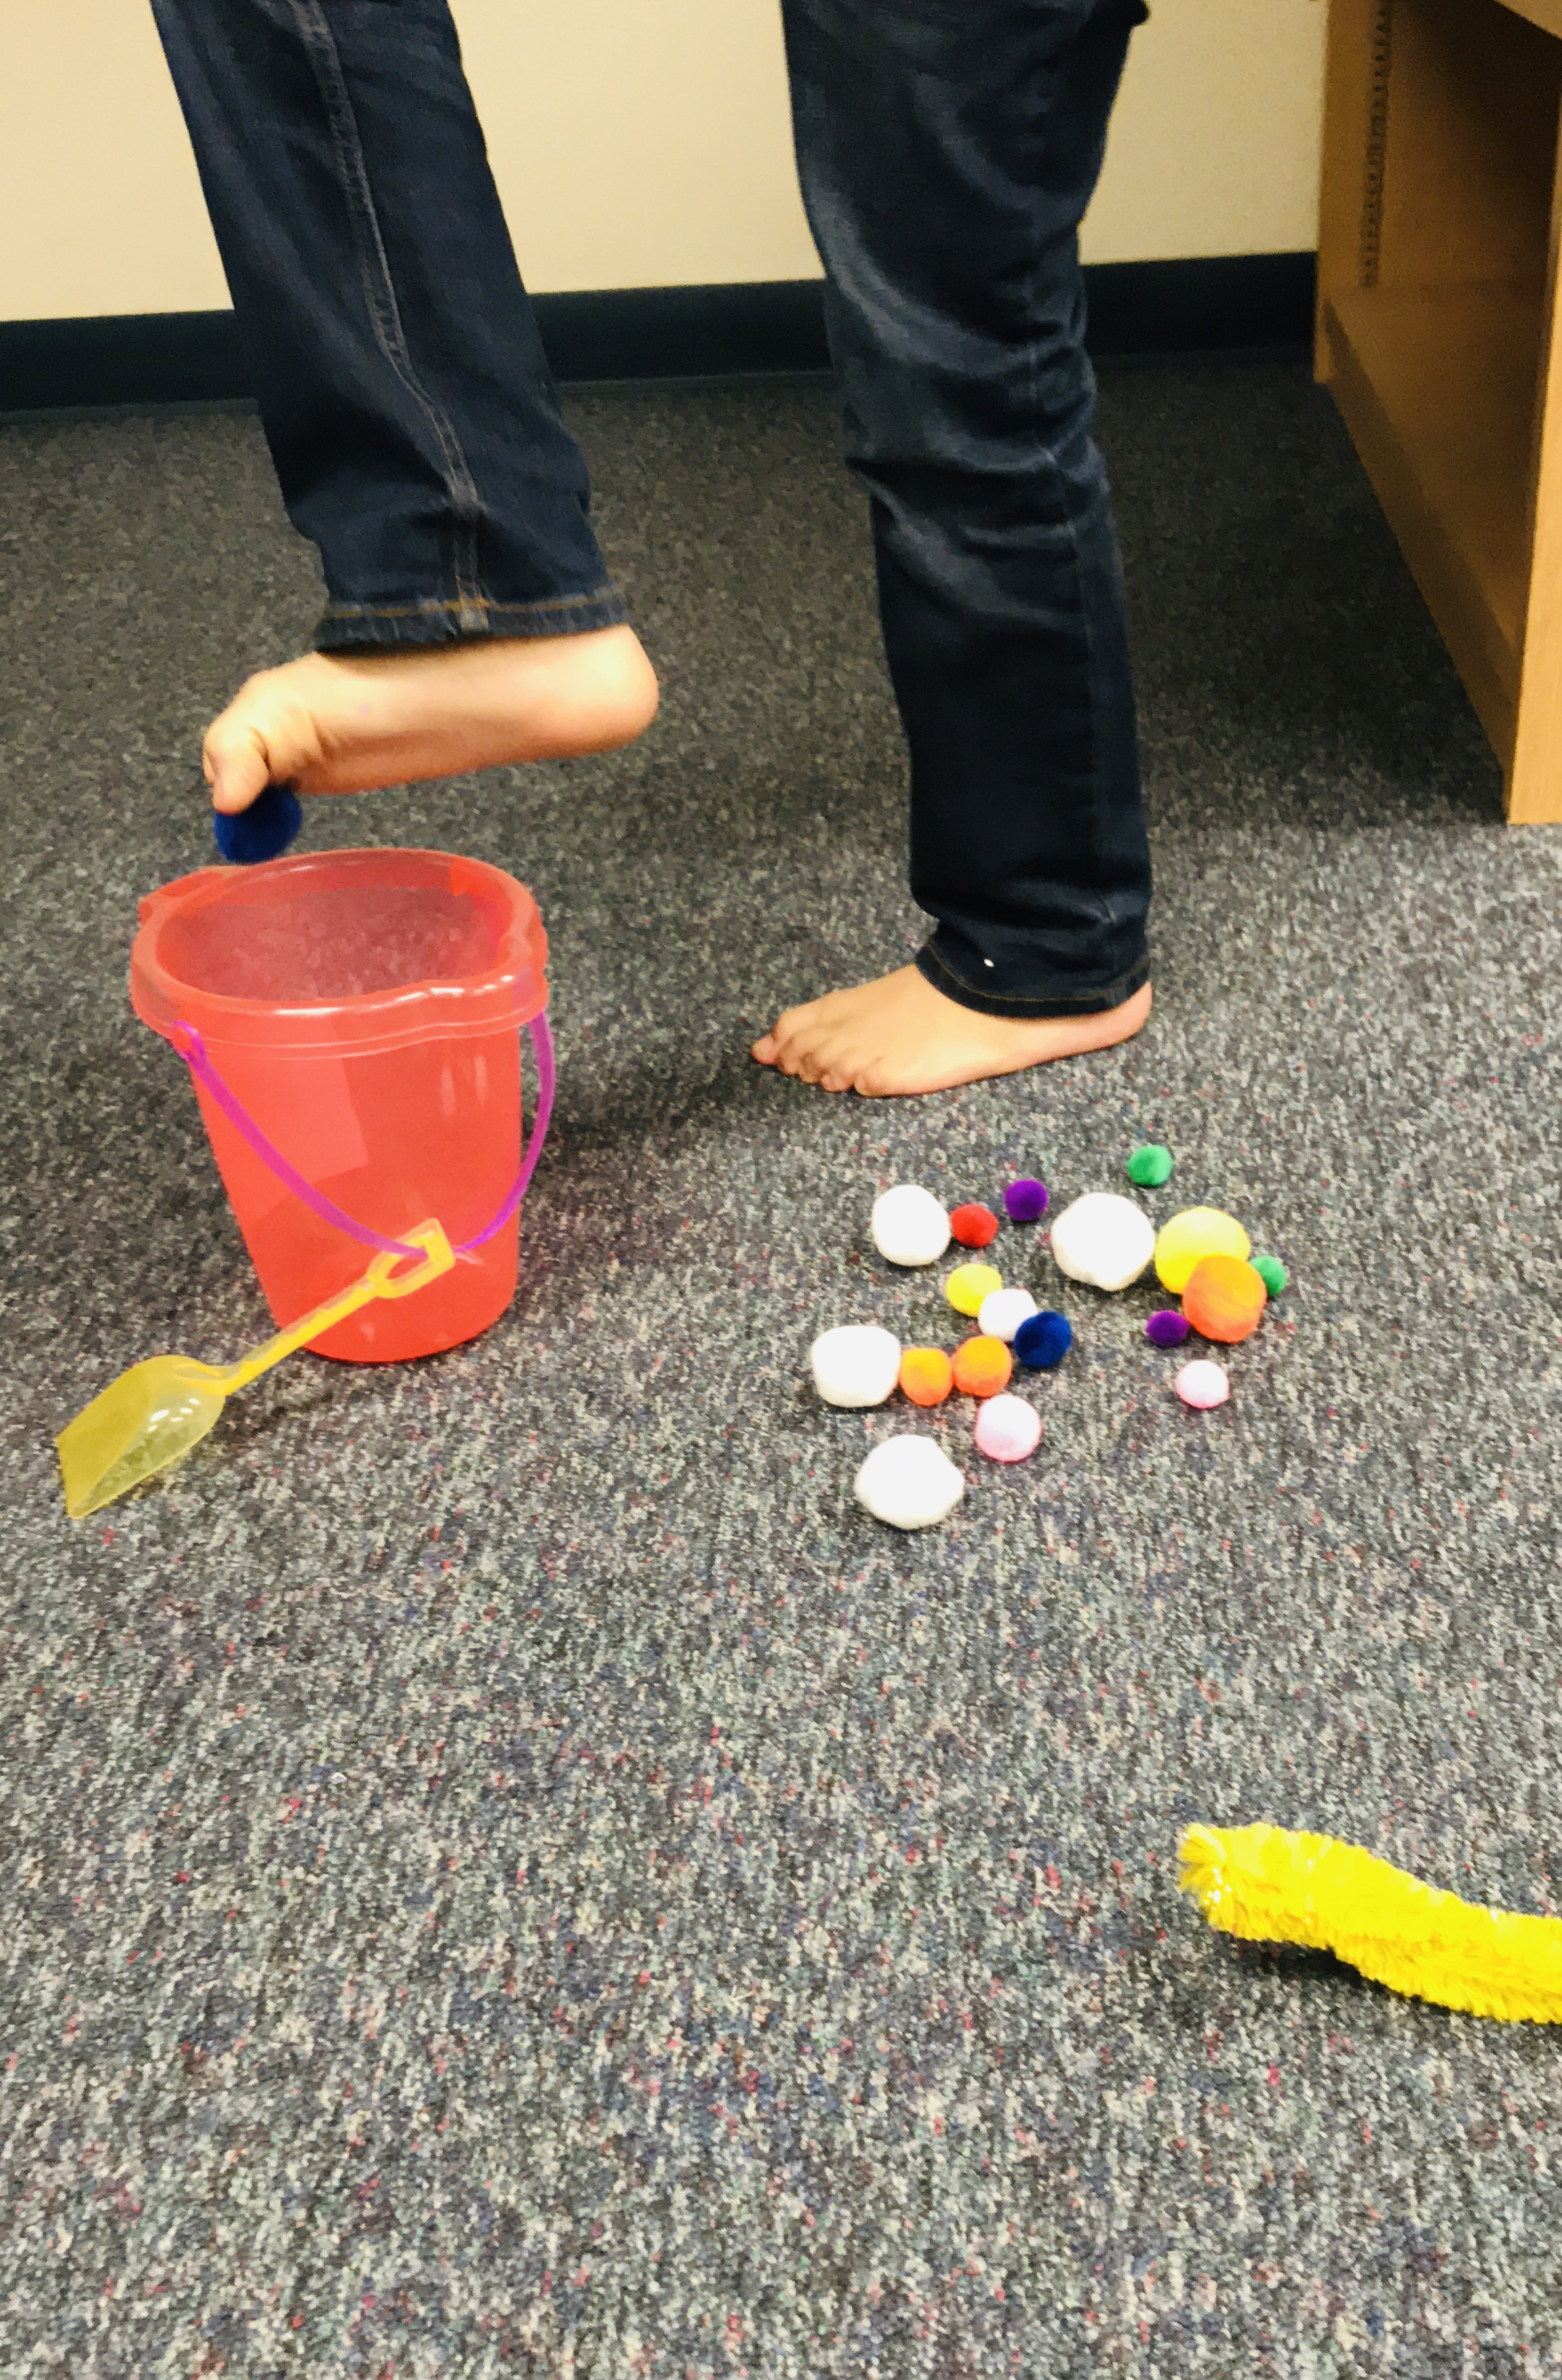 Using bare feet to pick up fuzzy balls to put in bucket